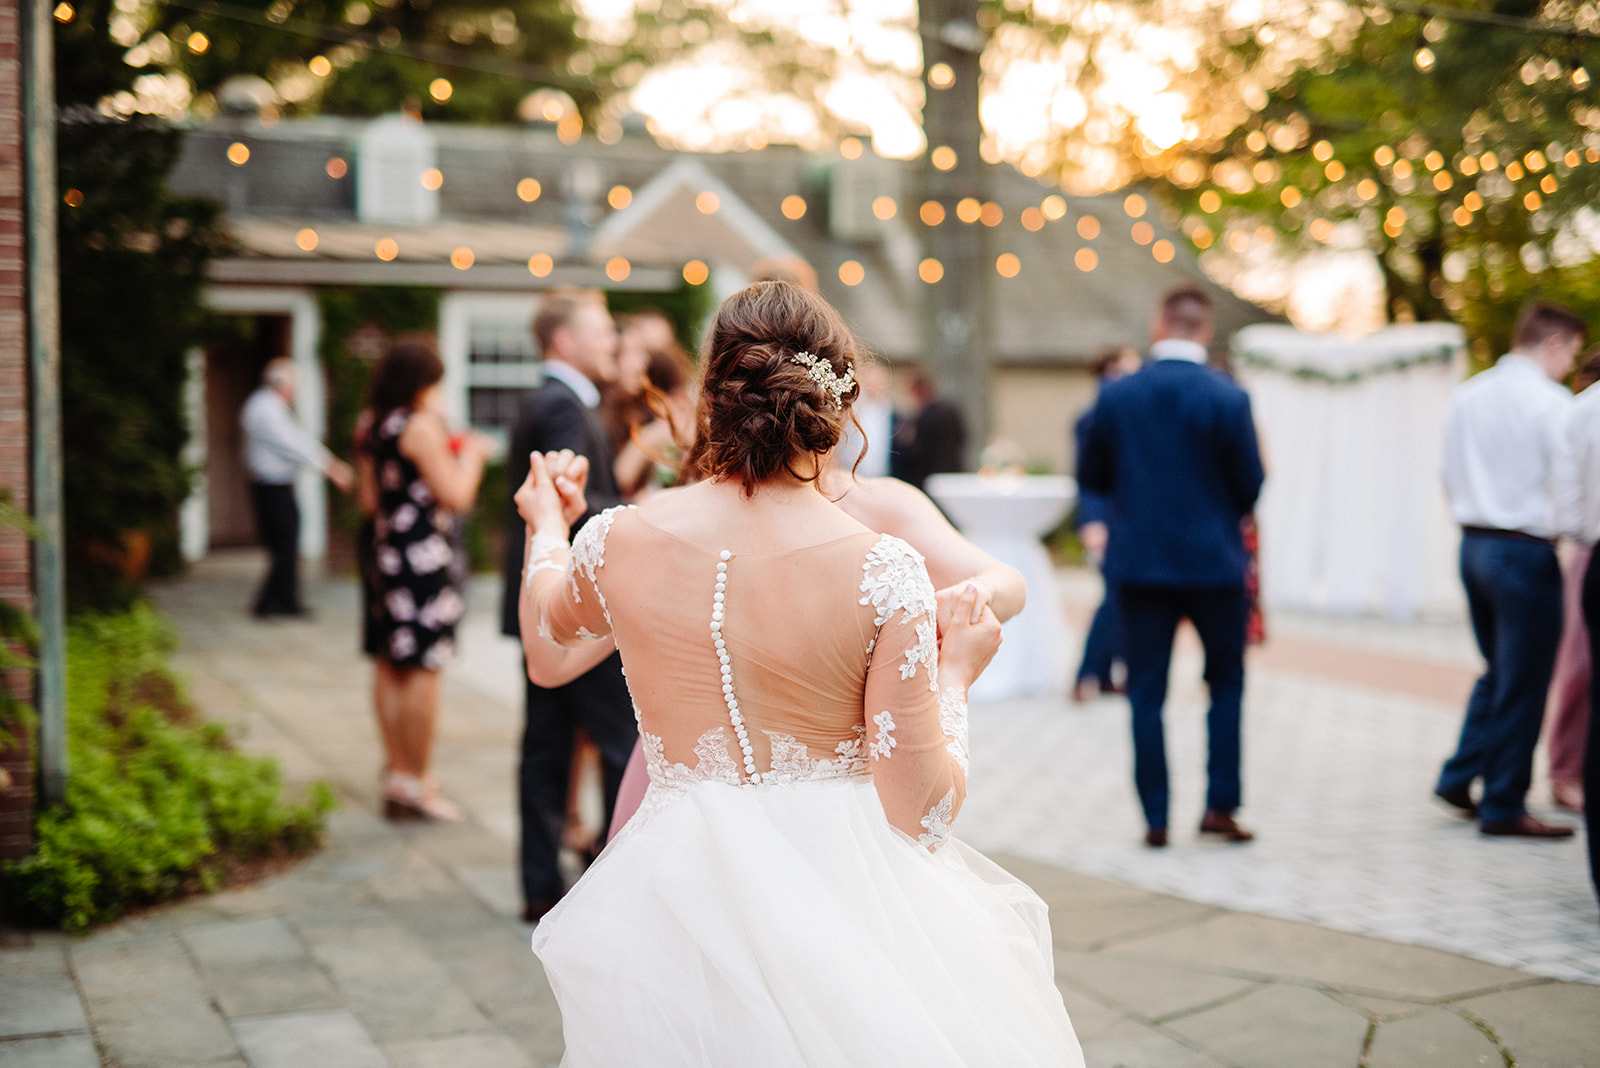 A bride dancing during the wedding reception.